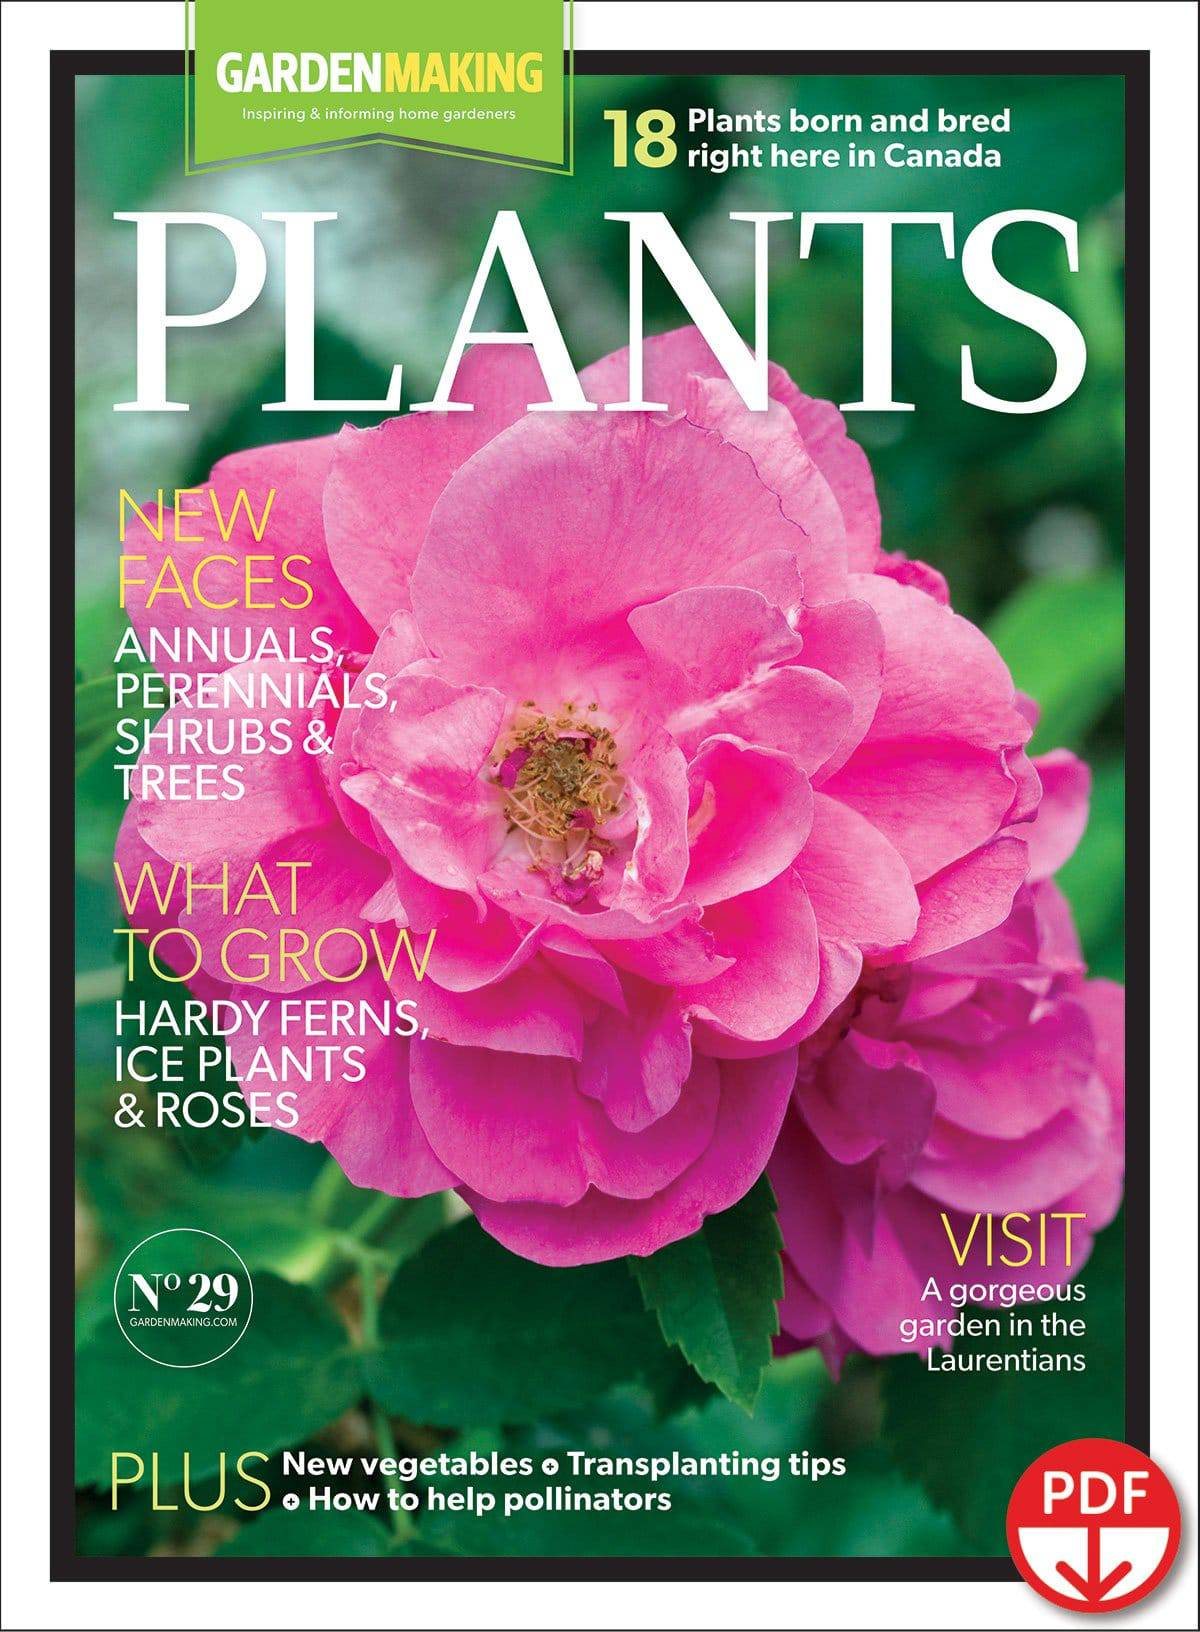 Issue No. 29 of Garden Making magazine focuses on plants